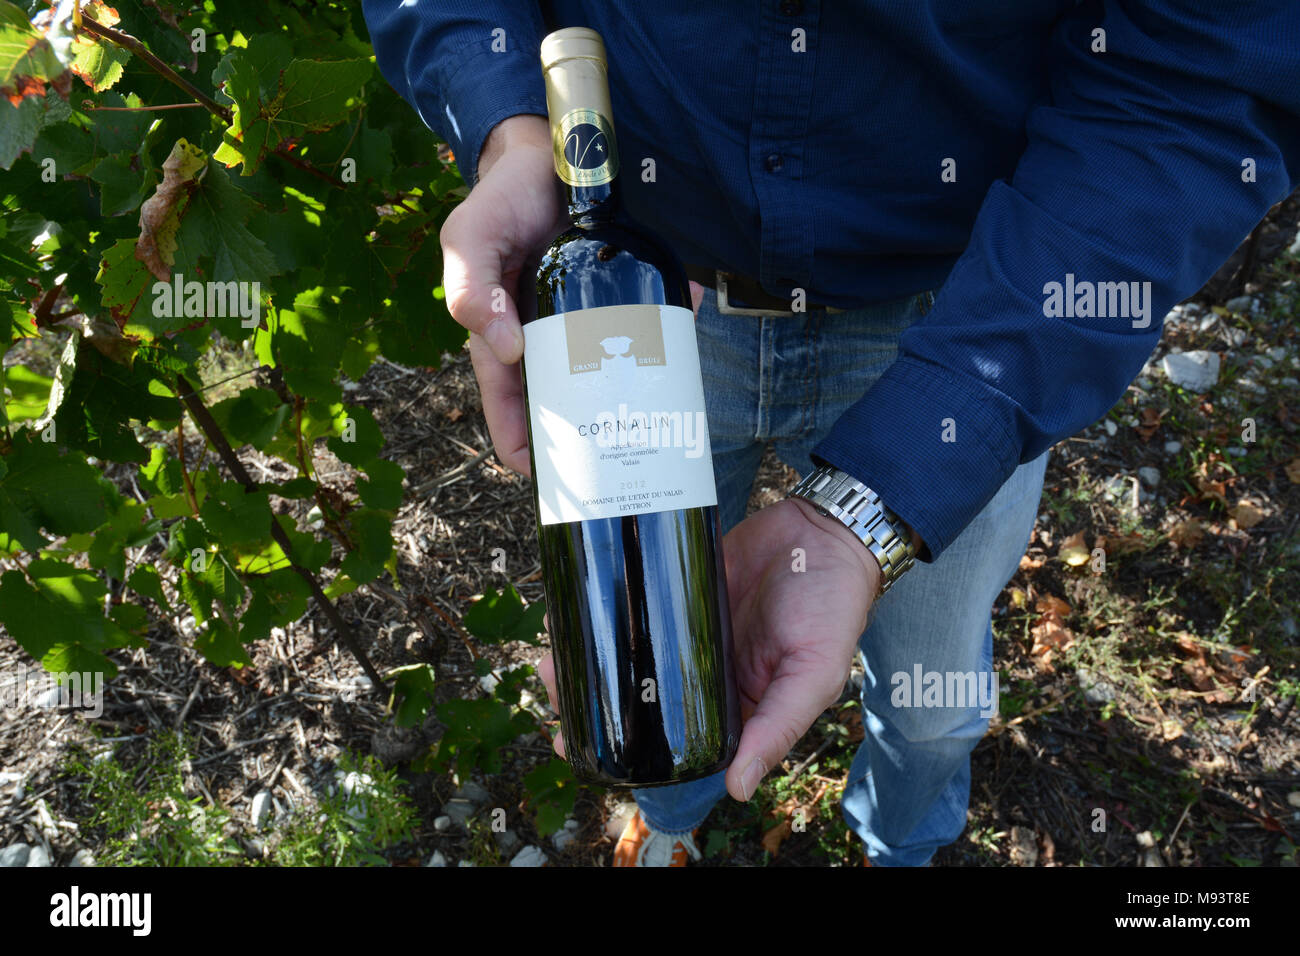 A swiss winemaker in a vineyard near Chamoson holding a bottle of Cornalin red wine, made of grapes grown in the Valais region of Switzerland. - Stock Image